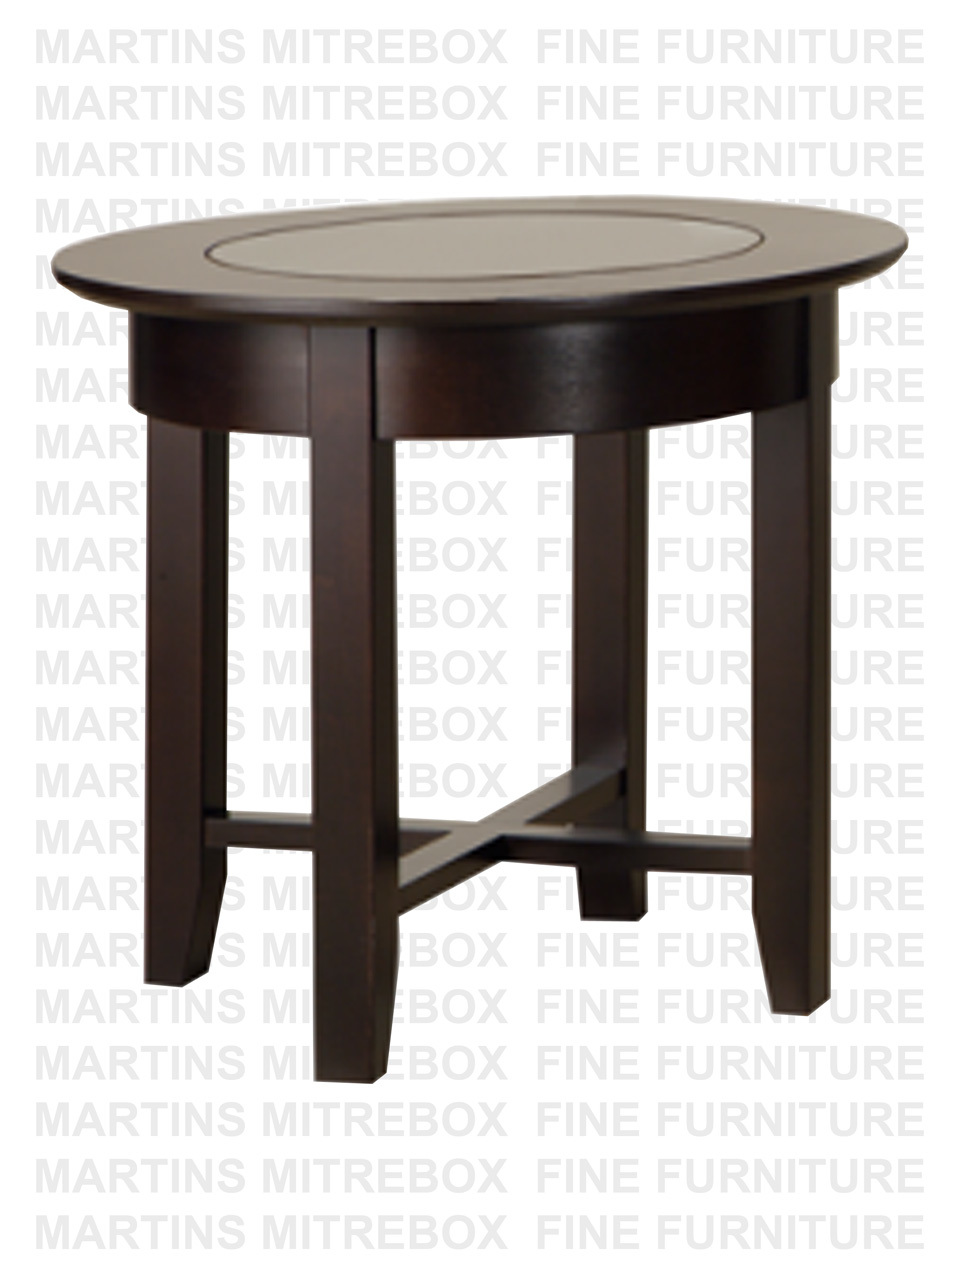 oak demi lume end table with glass top nightstand copy tables categories dorel home products homesense jobs ott side what colour cushions for brown couch magnolia bunk steel dog